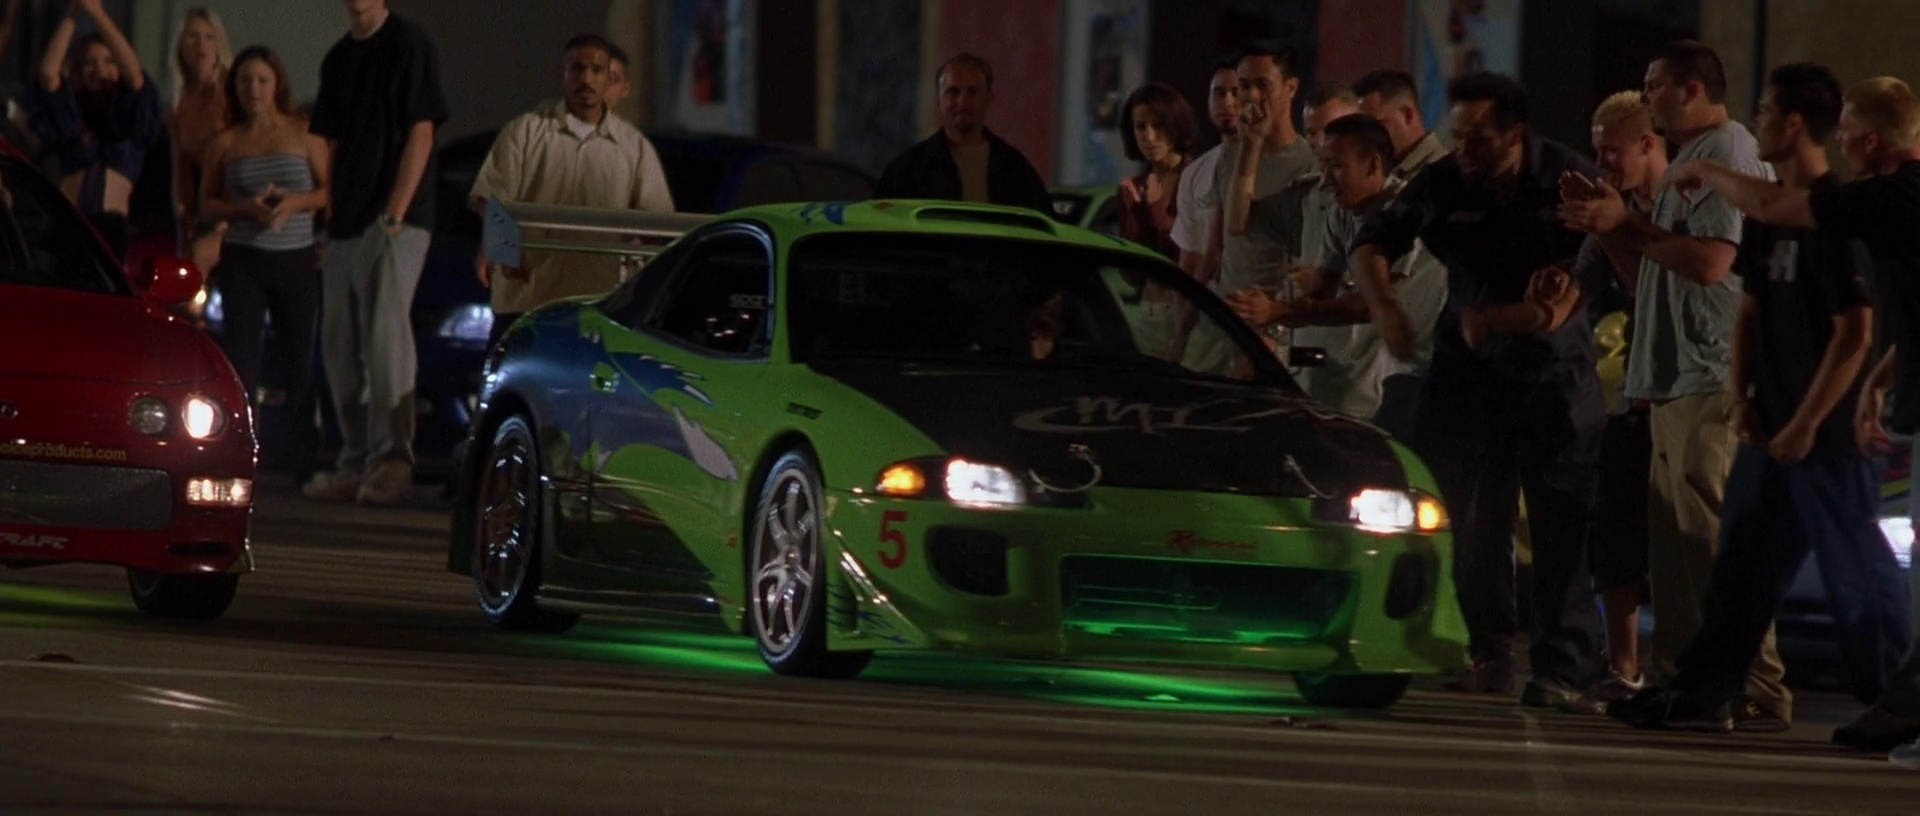 Image - Brian's Eclipse - Night Race.jpg | The Fast and the Furious ...